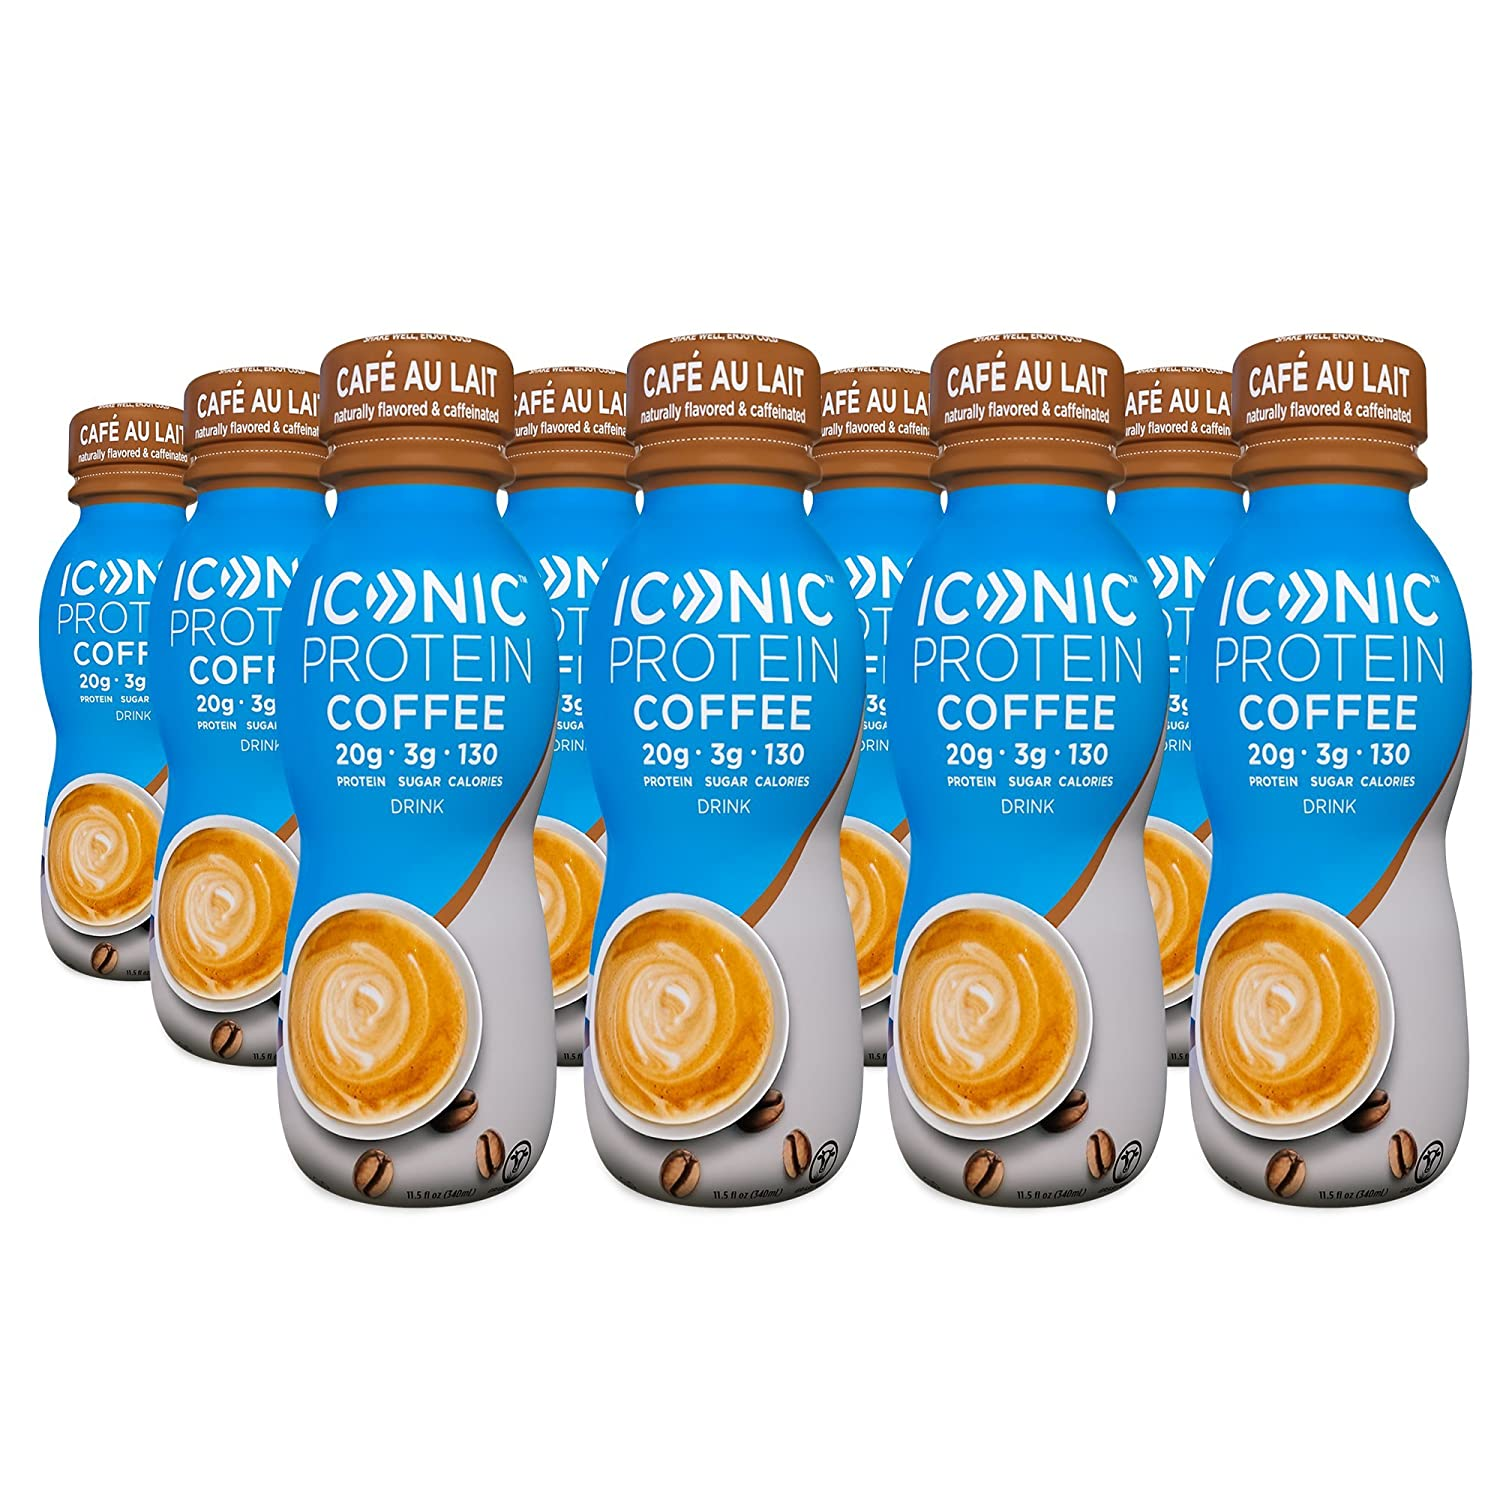 Cafe au lait kitchen decor - Amazon Com Iconic Beverages Iconic Grass Fed Protein Drink Caf Au Lait 11 5 Ounce Pack Of 12 Amazon Launchpad